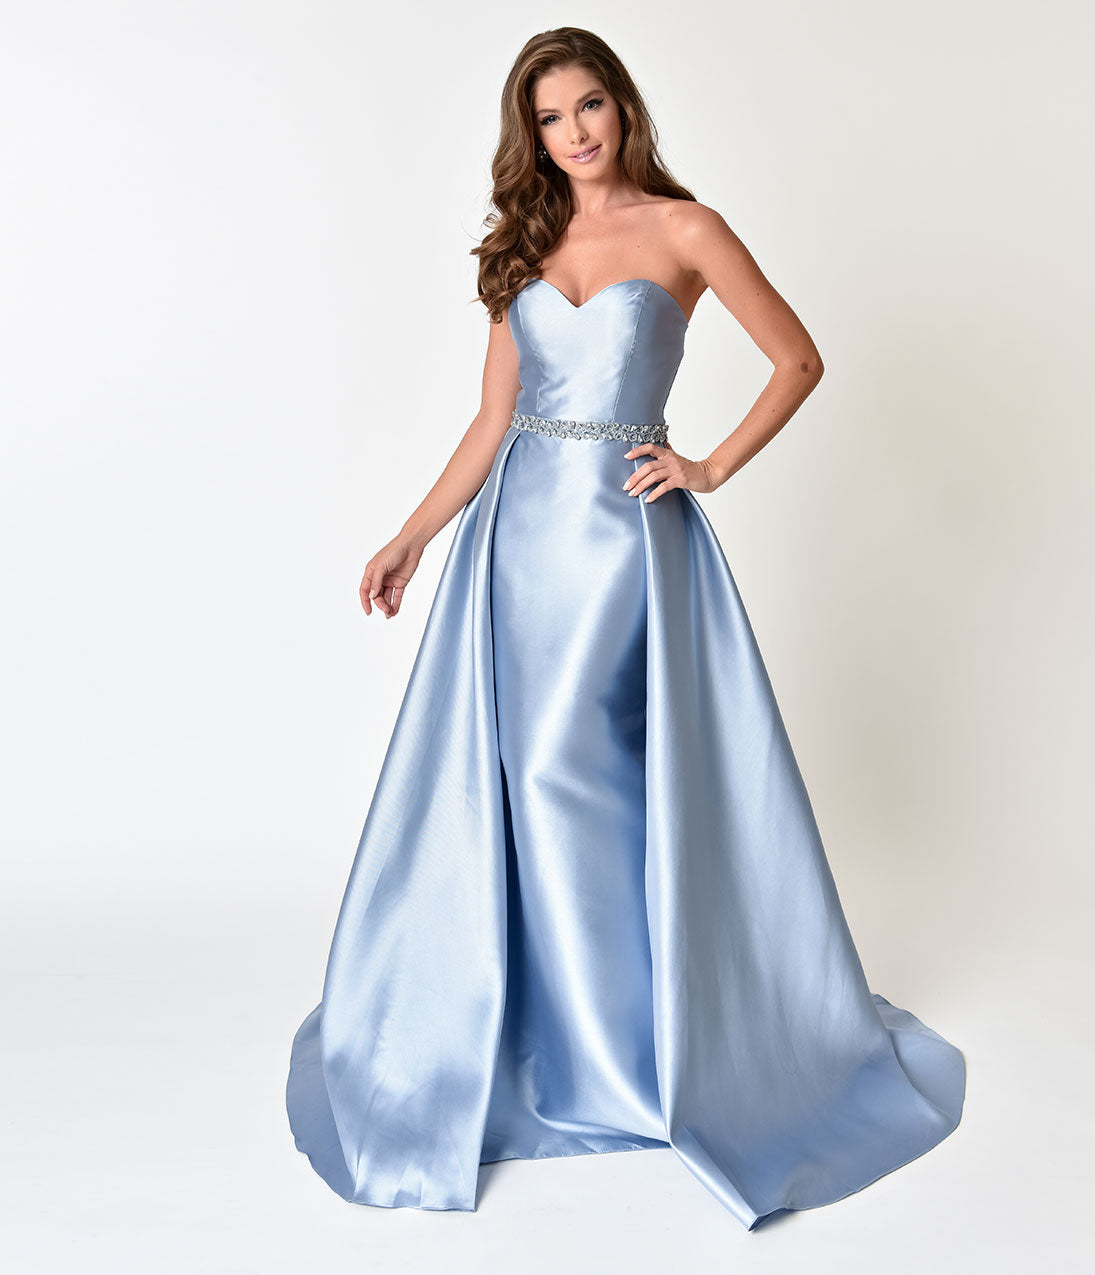 1950s Style Cocktail Dresses & Gowns Perry Blue Strapless Sweetheart Neckline Satin Prom Gown $190.00 AT vintagedancer.com